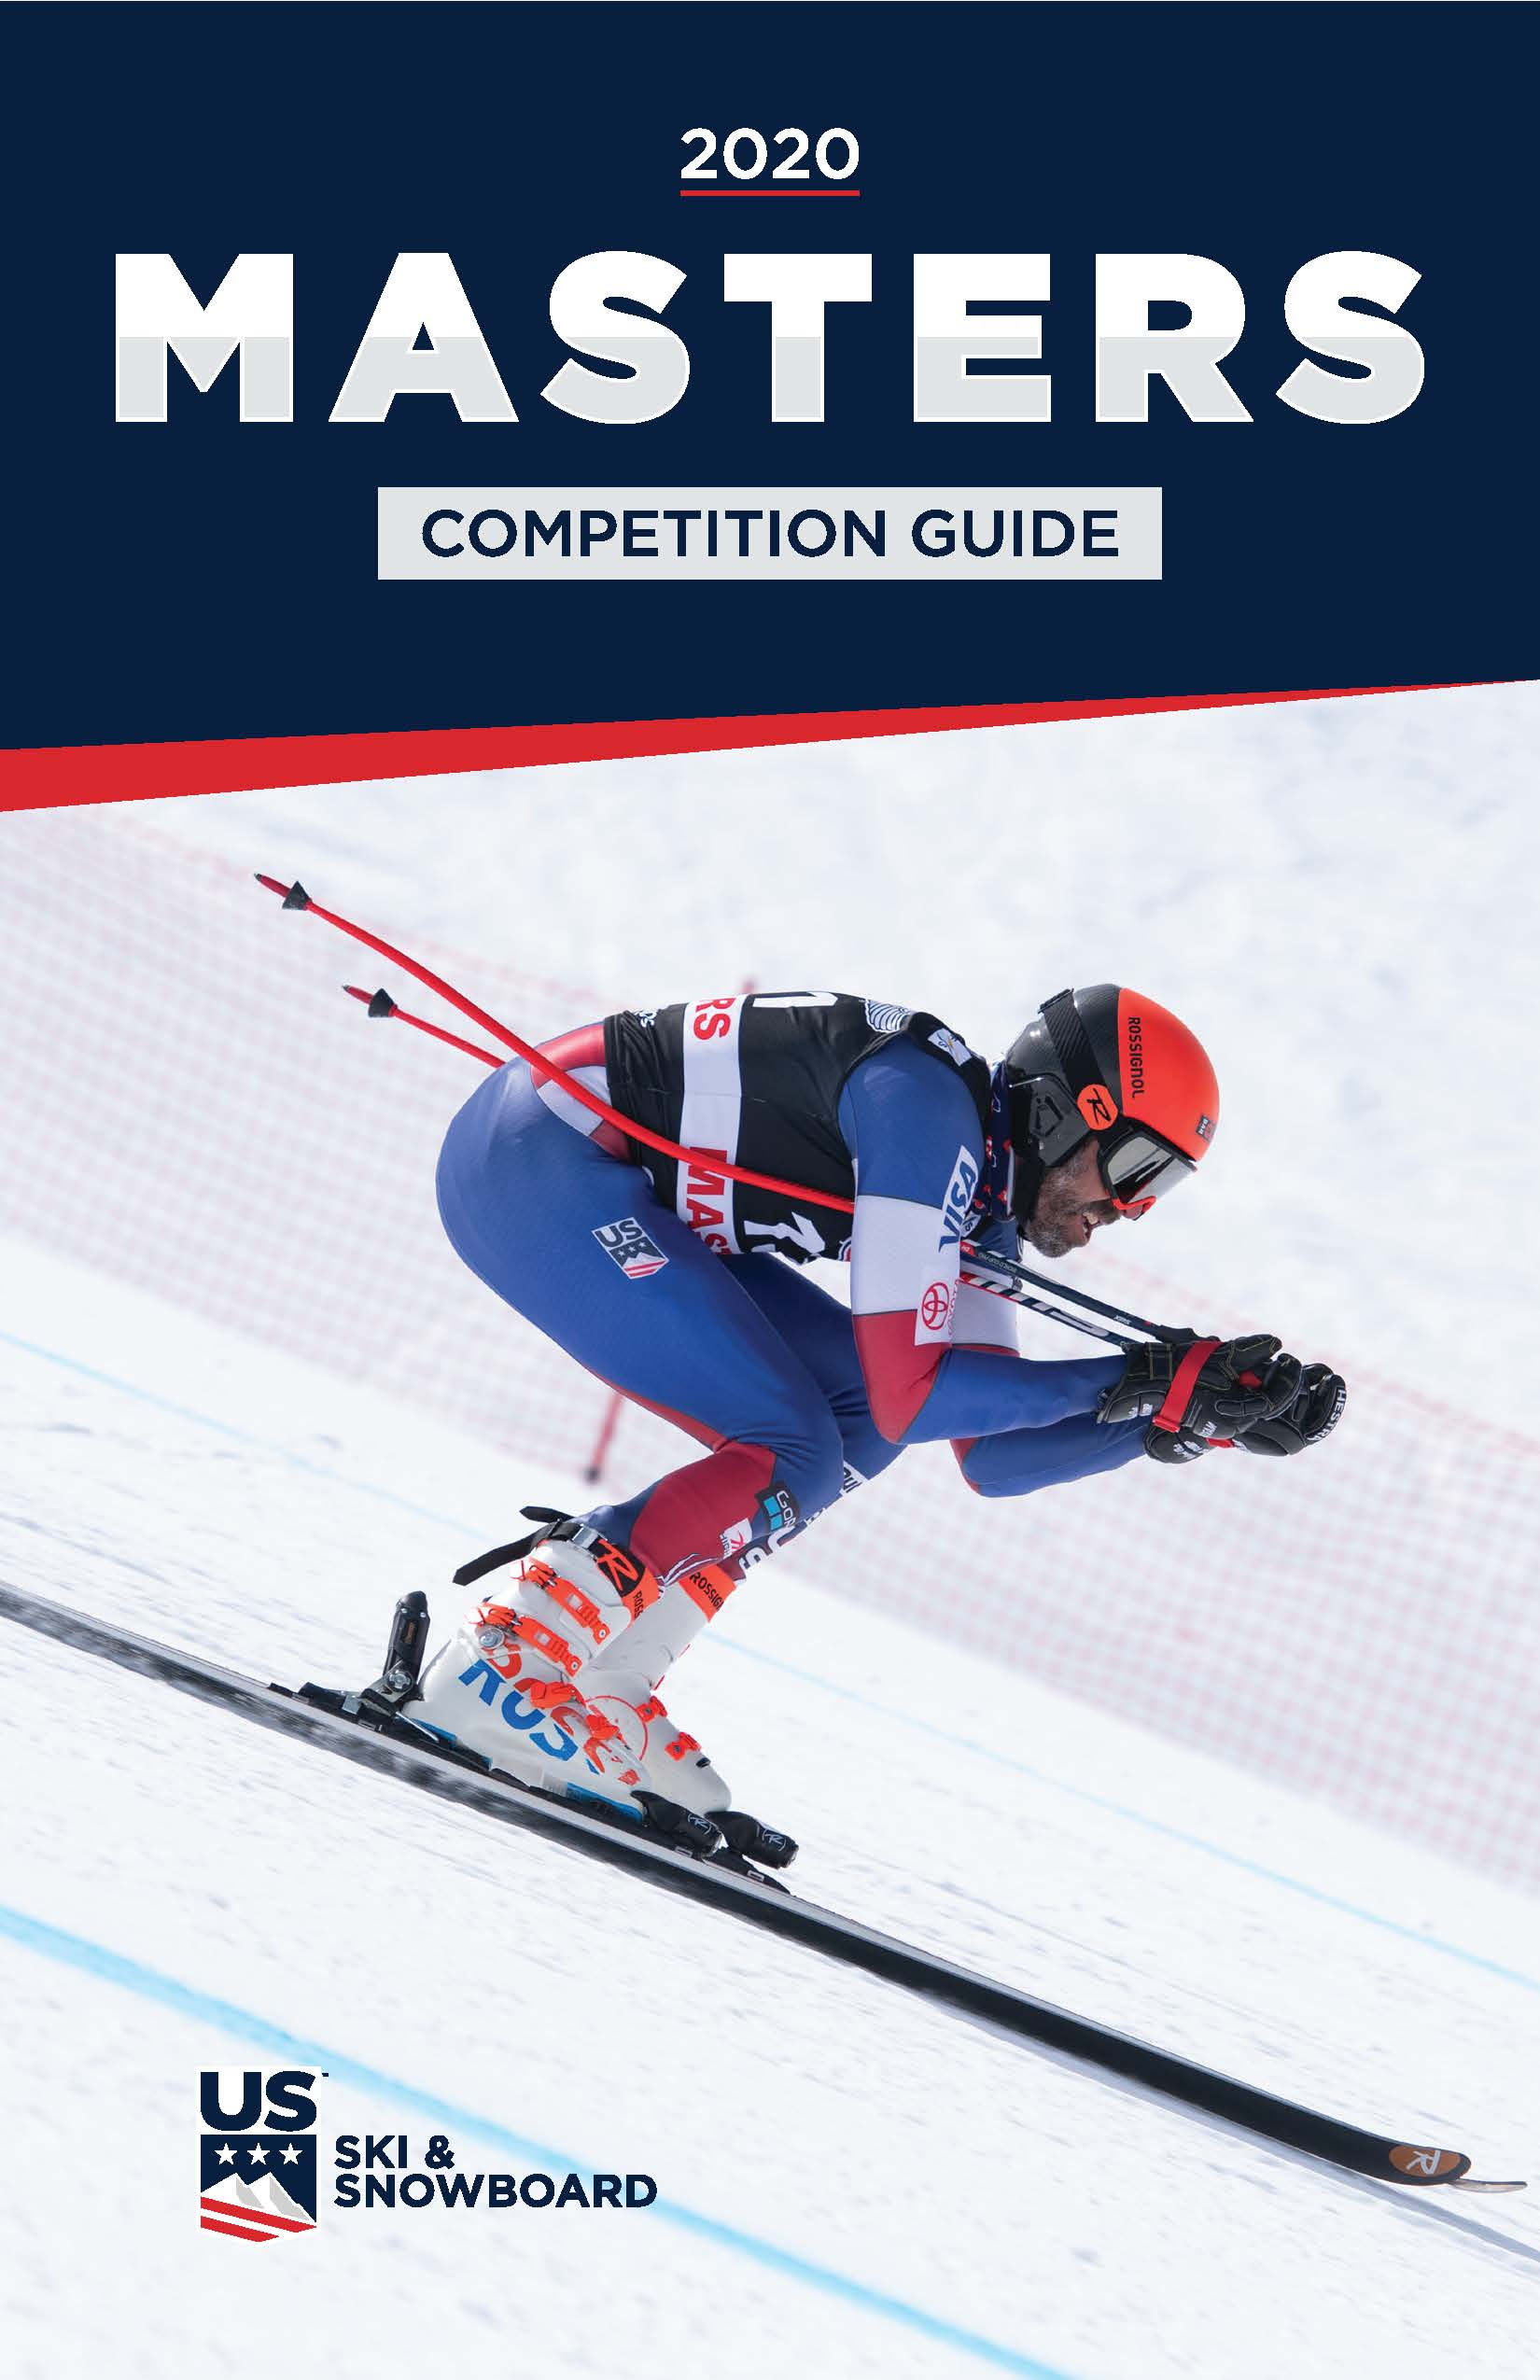 2020 Masters Alpine Competition Guide Cover